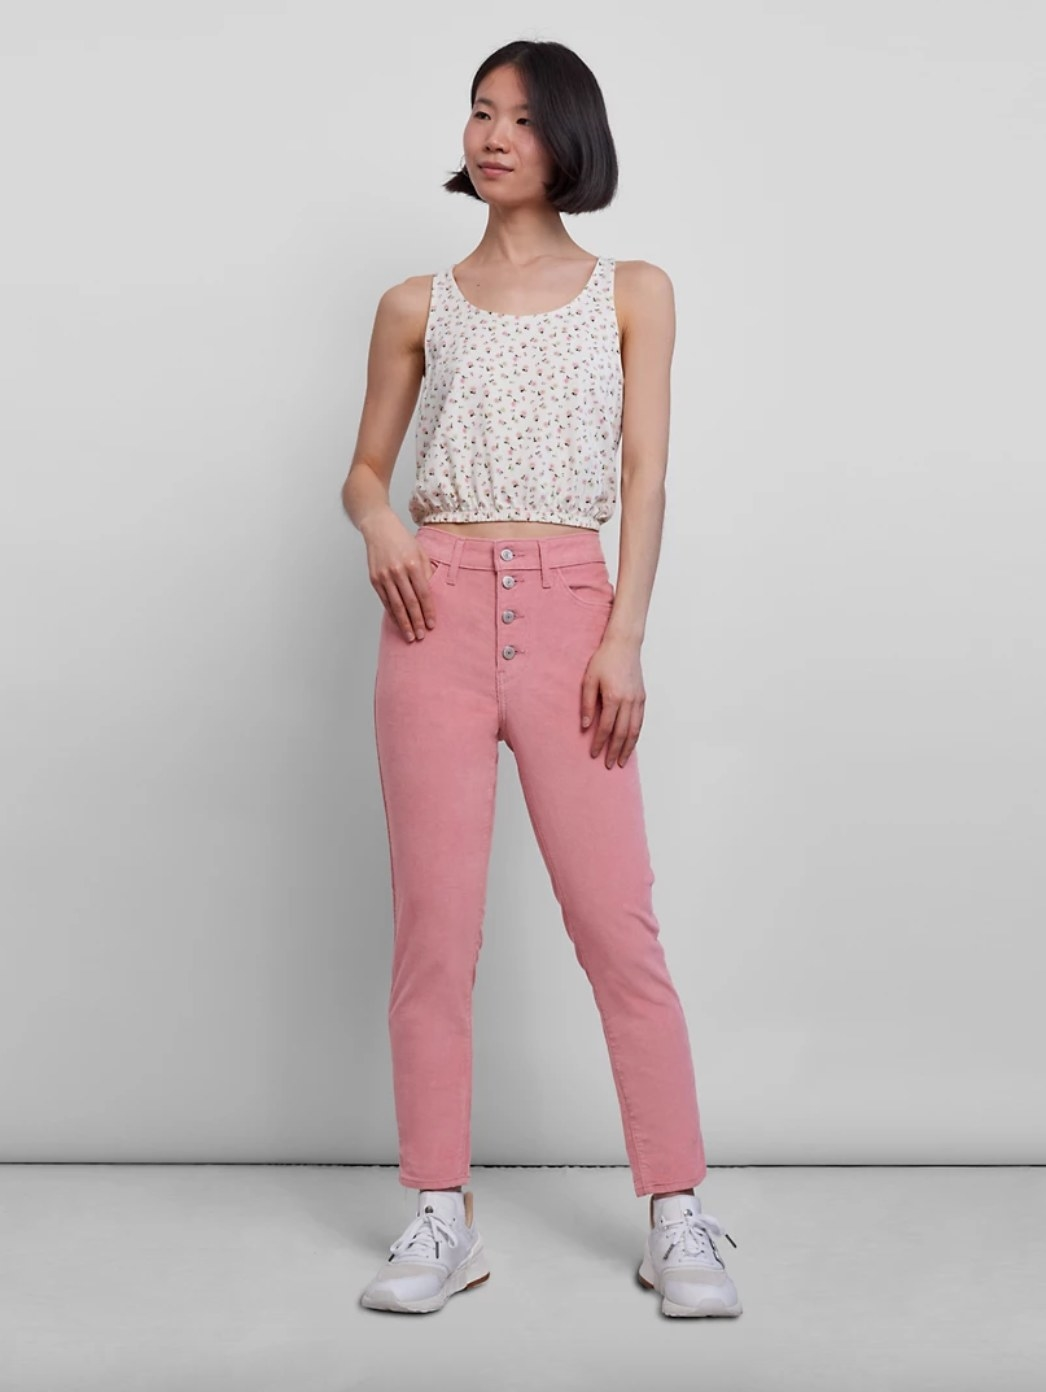 The pair of high rise jeans in blush